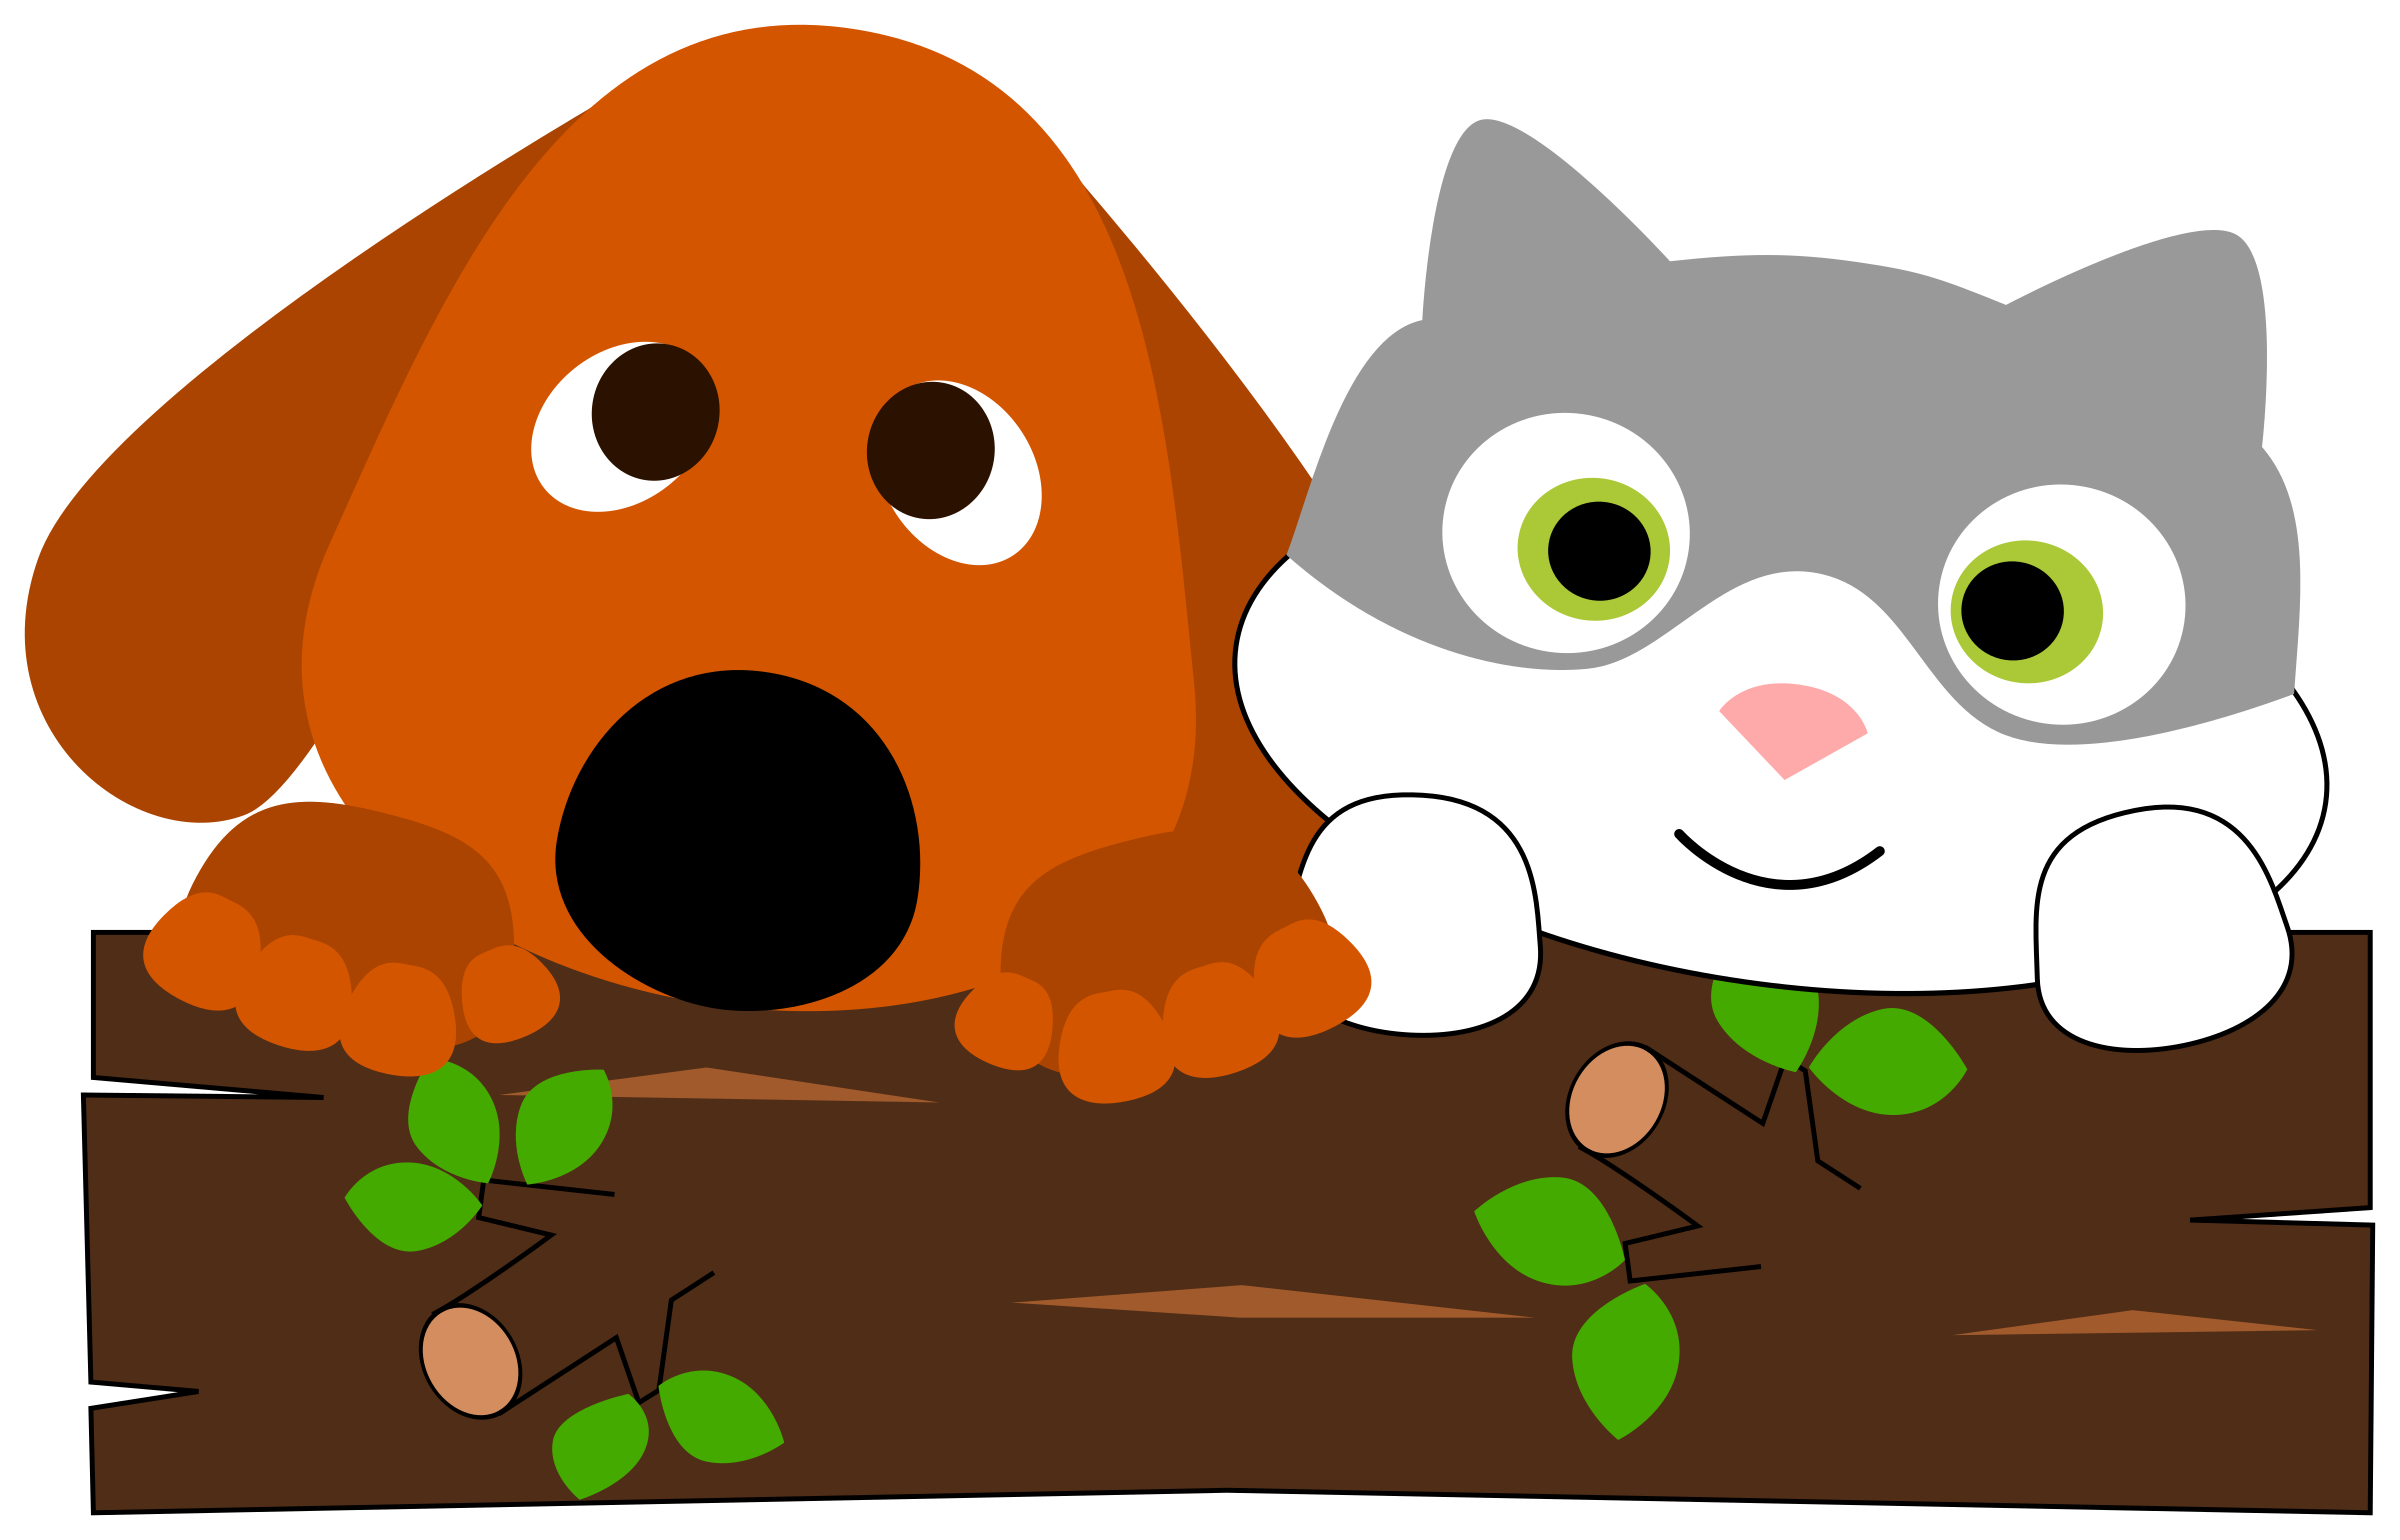 Dog hugging cat clipart vector black and white download Clipart - A dog and a cat behind a tree trunk vector black and white download